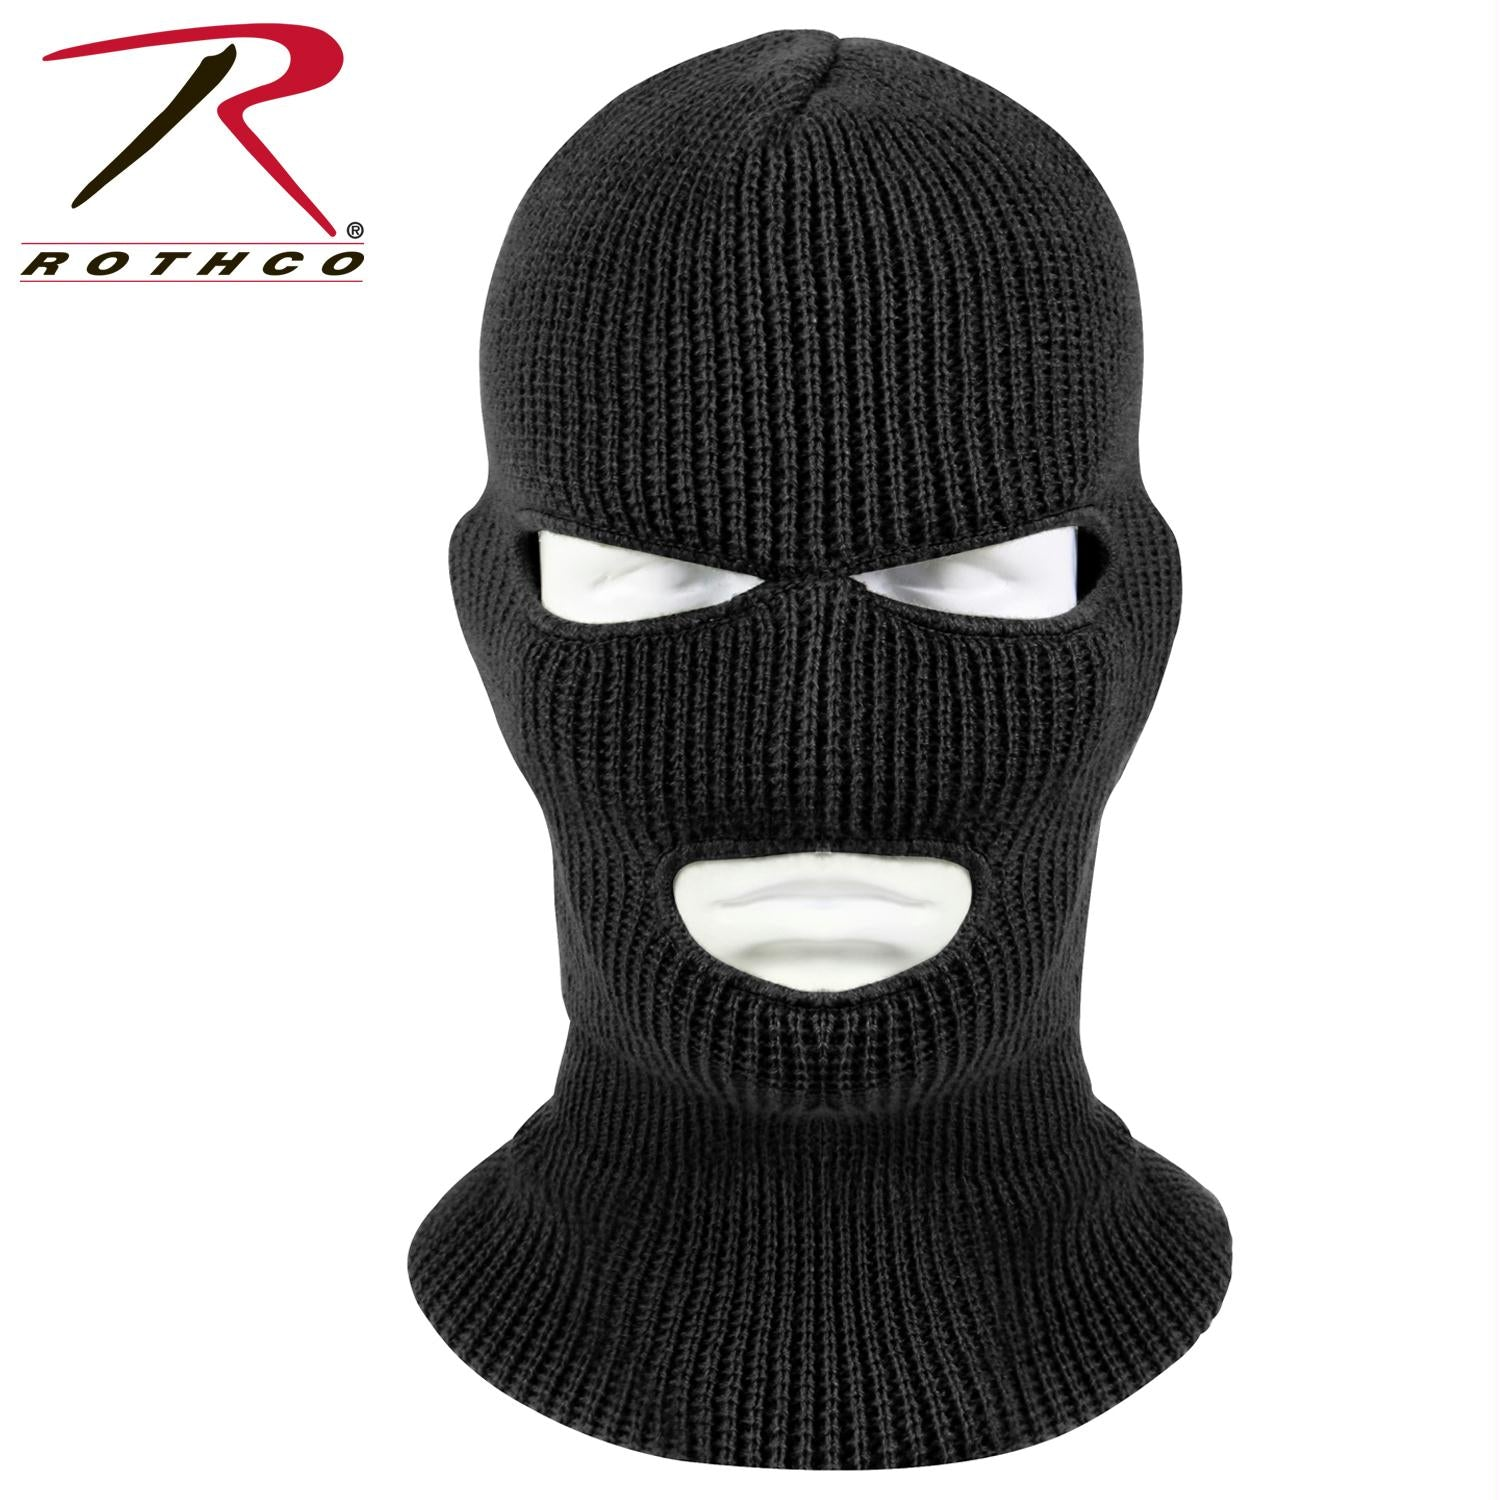 Rothco 3 Hole Face Mask - Black